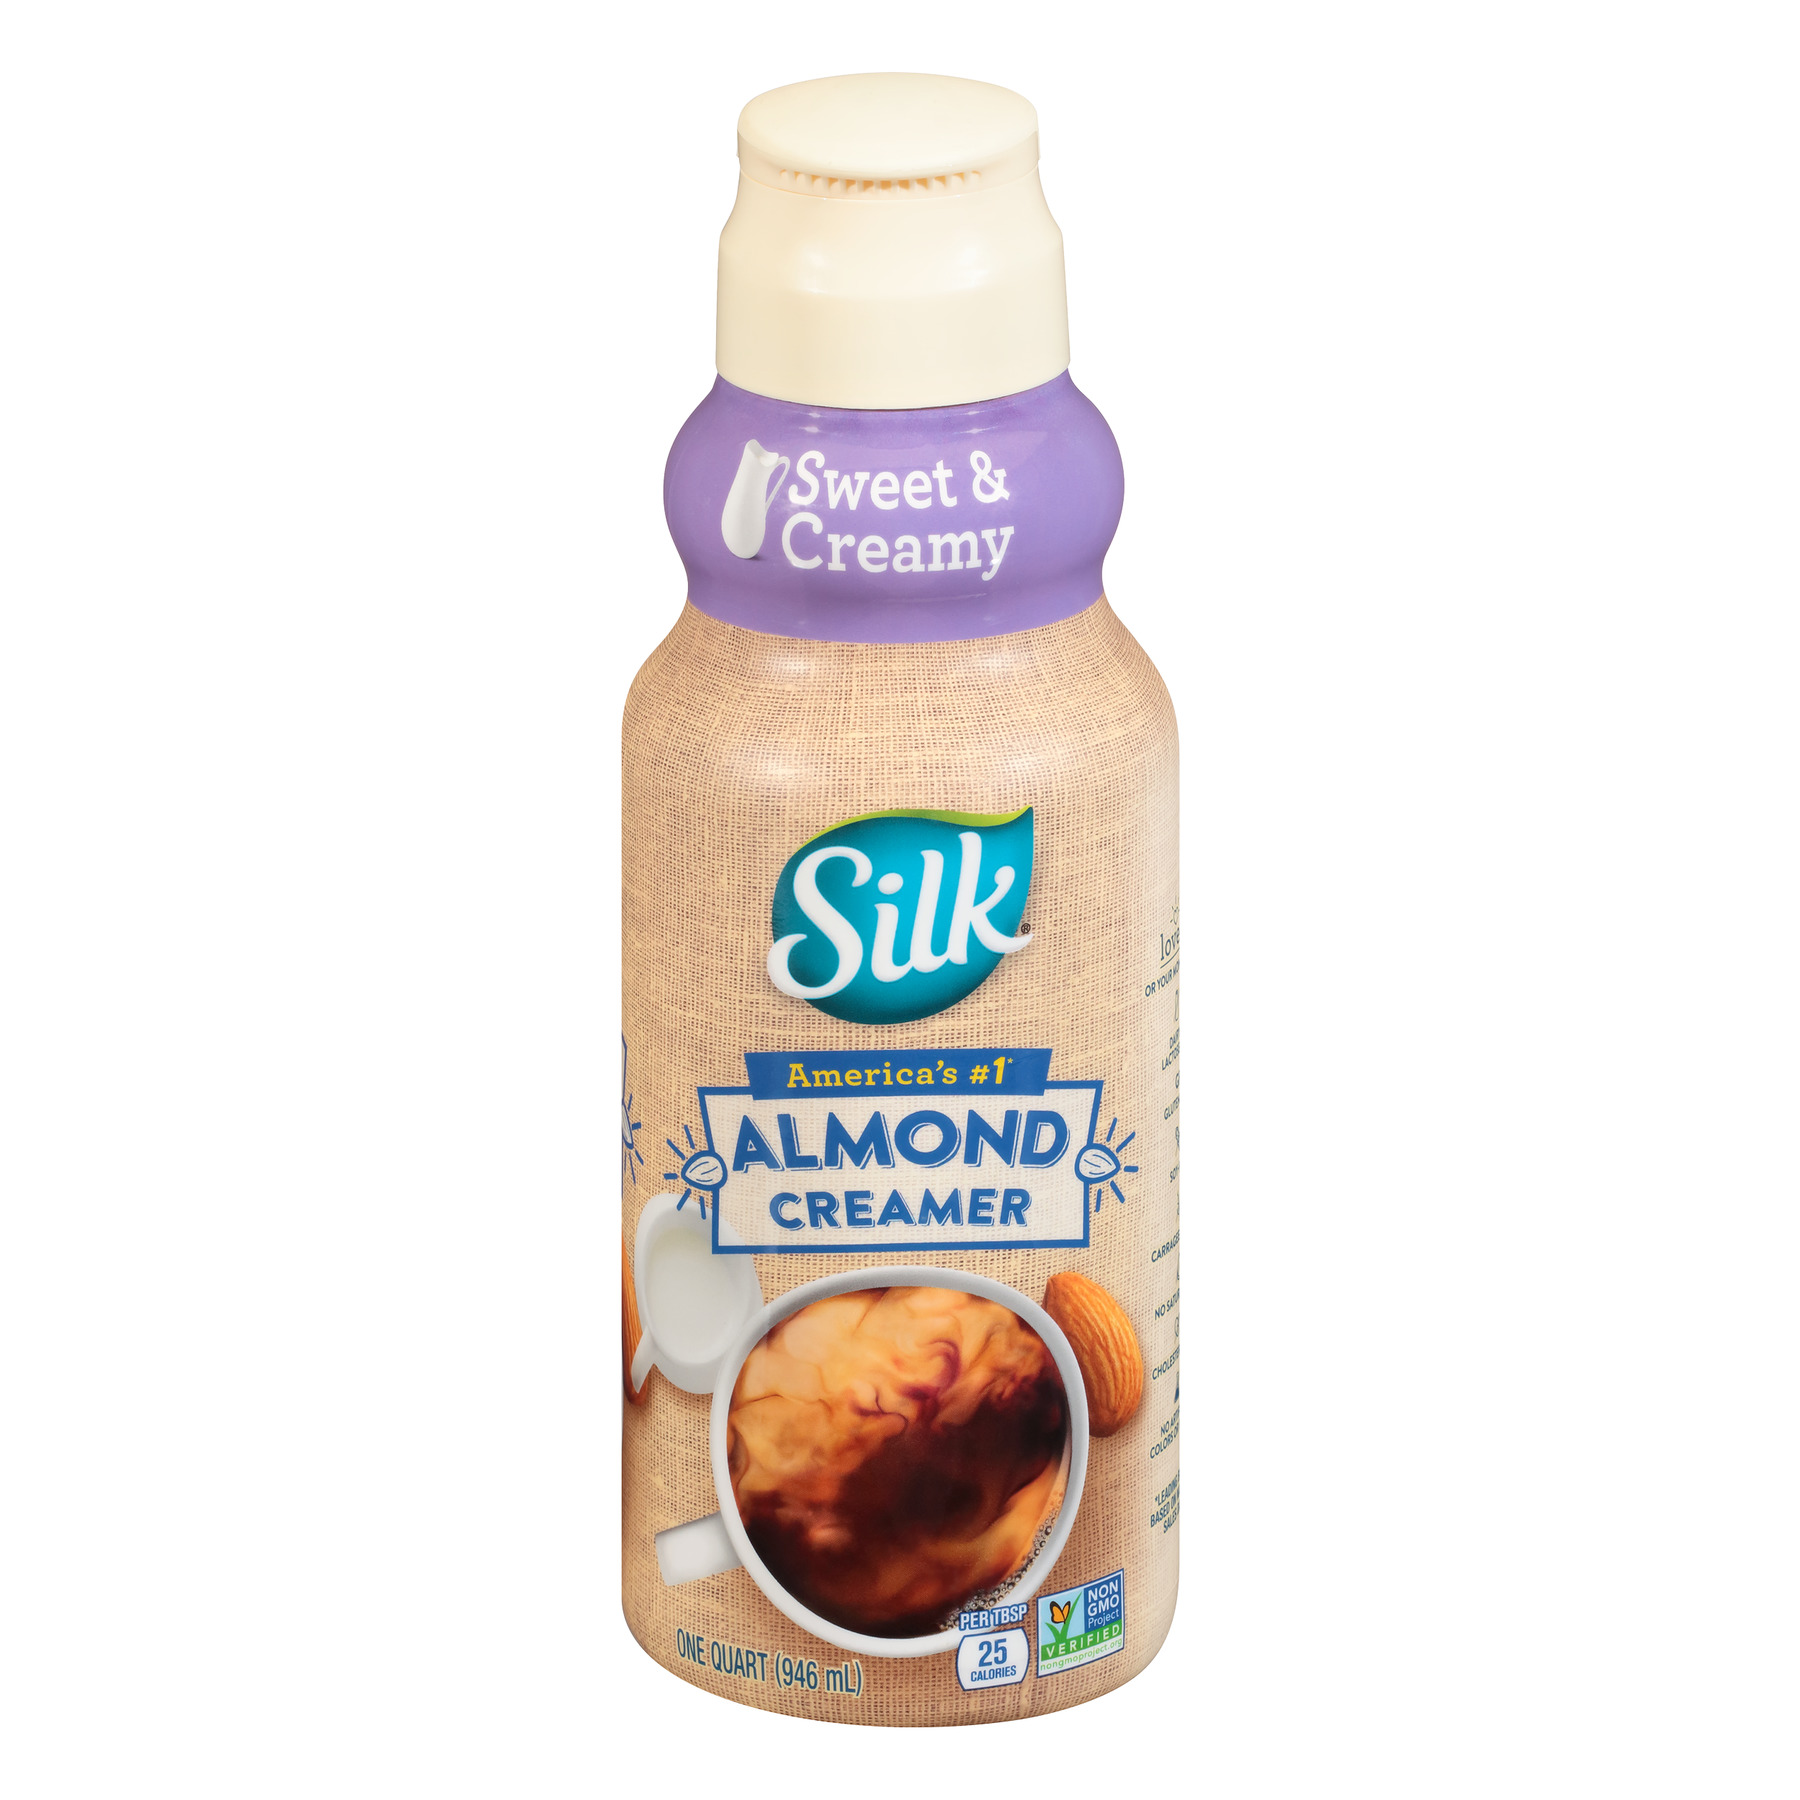 Silk Sweet & Creamy Almond Creamer 32 oz.